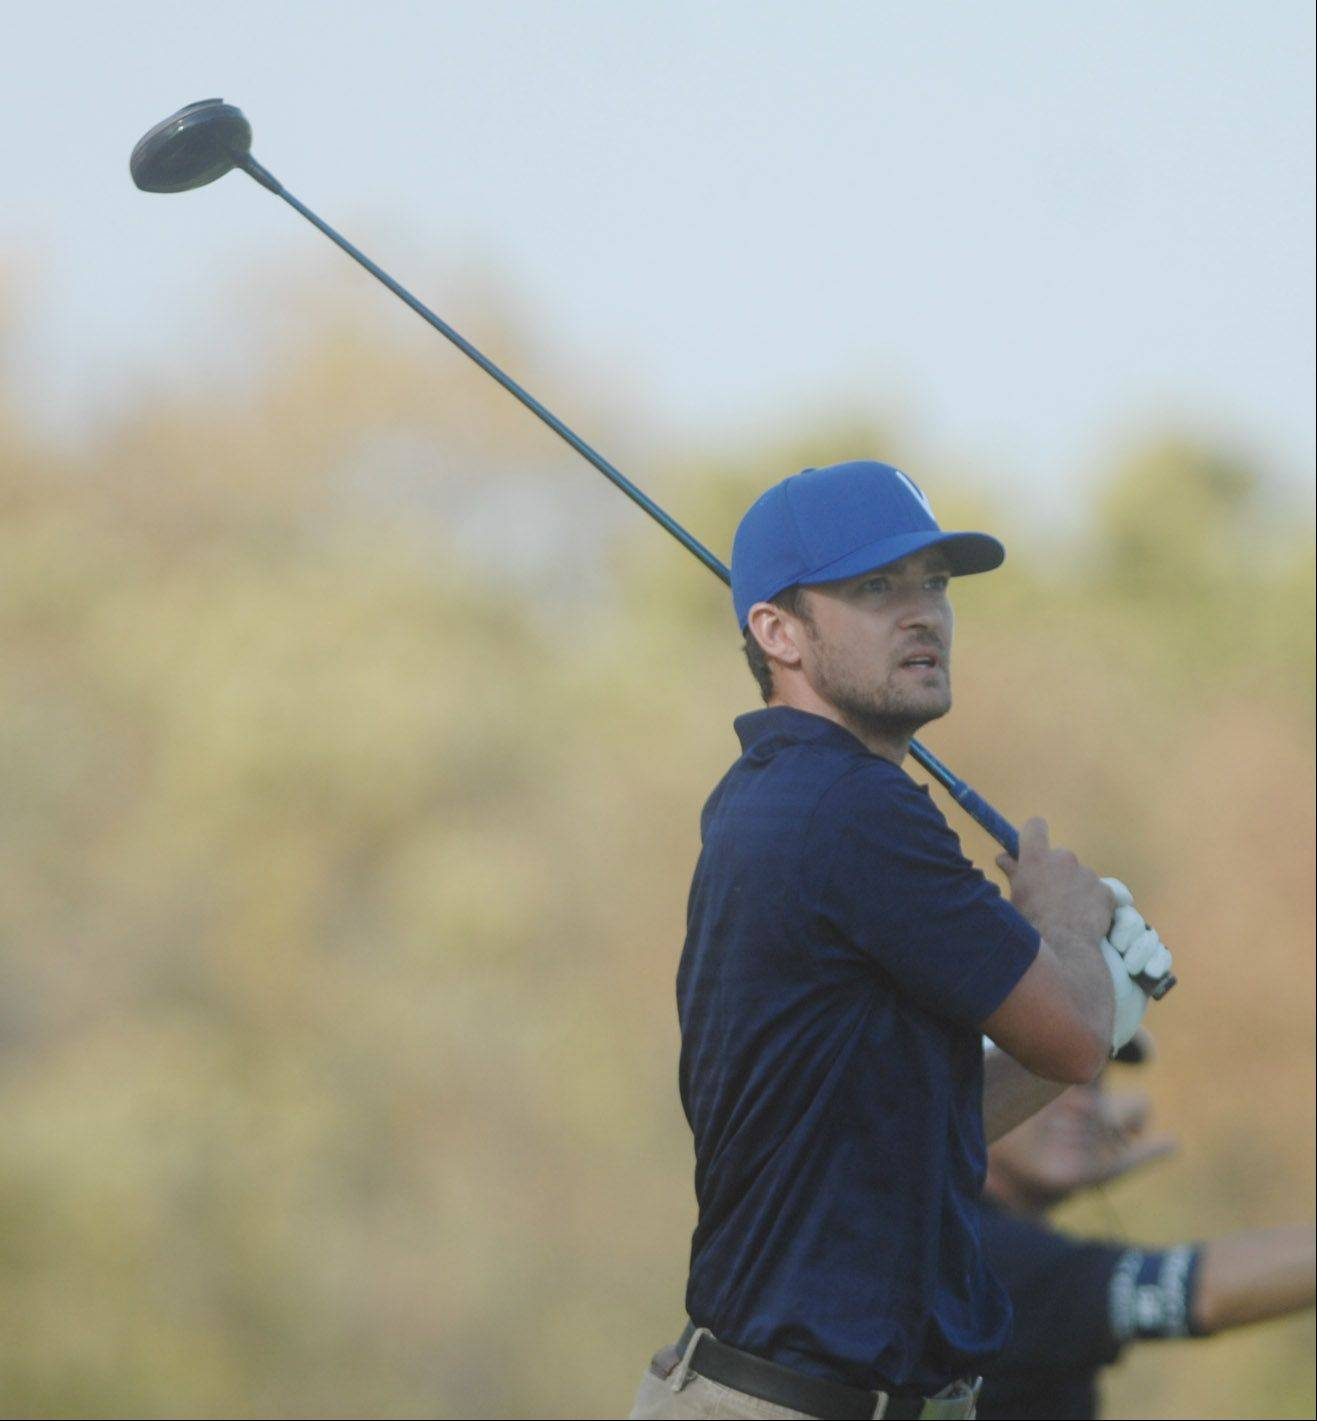 Movie star Justin Timberlake follows through on his swing on the 6th hole during the Celebrity Scramble Exhibition Tuesday at the 39th Ryder Cup in Medinah.